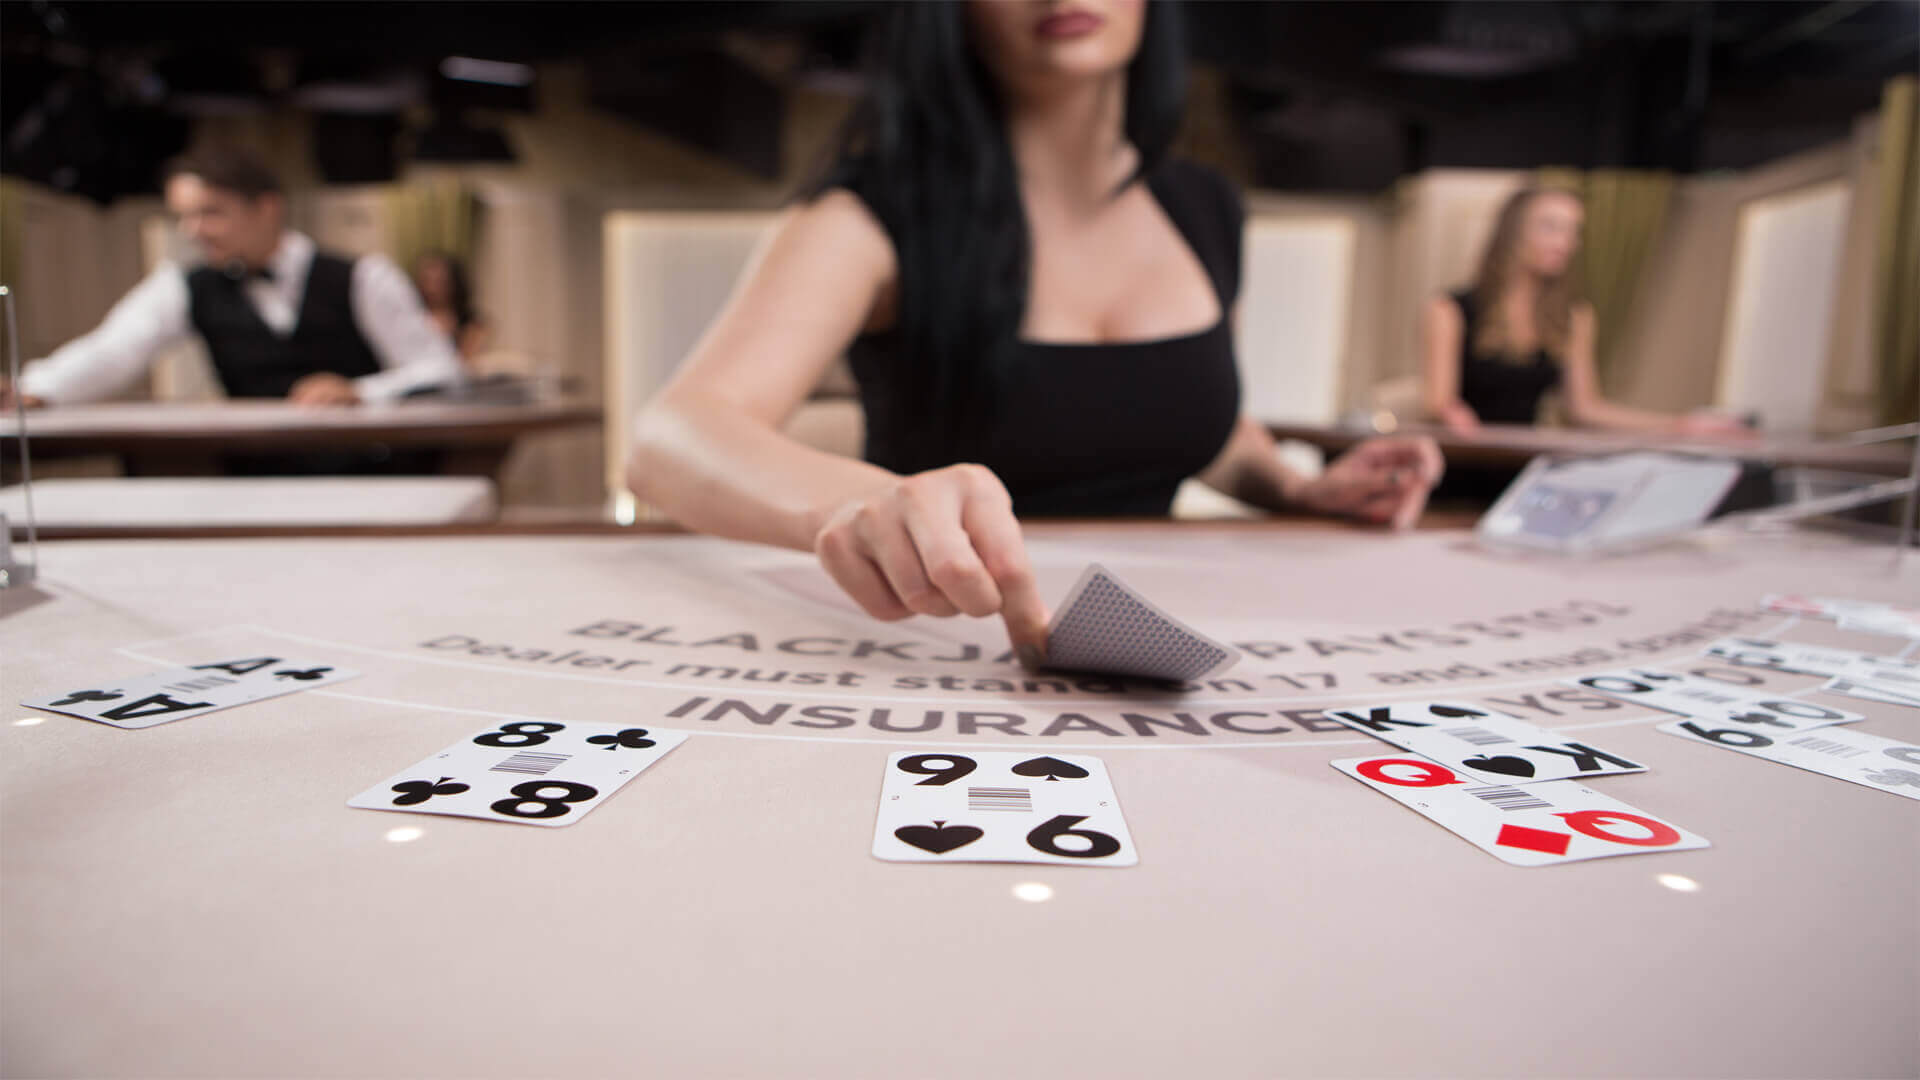 How to Win at Blackjack? Basic Strategy